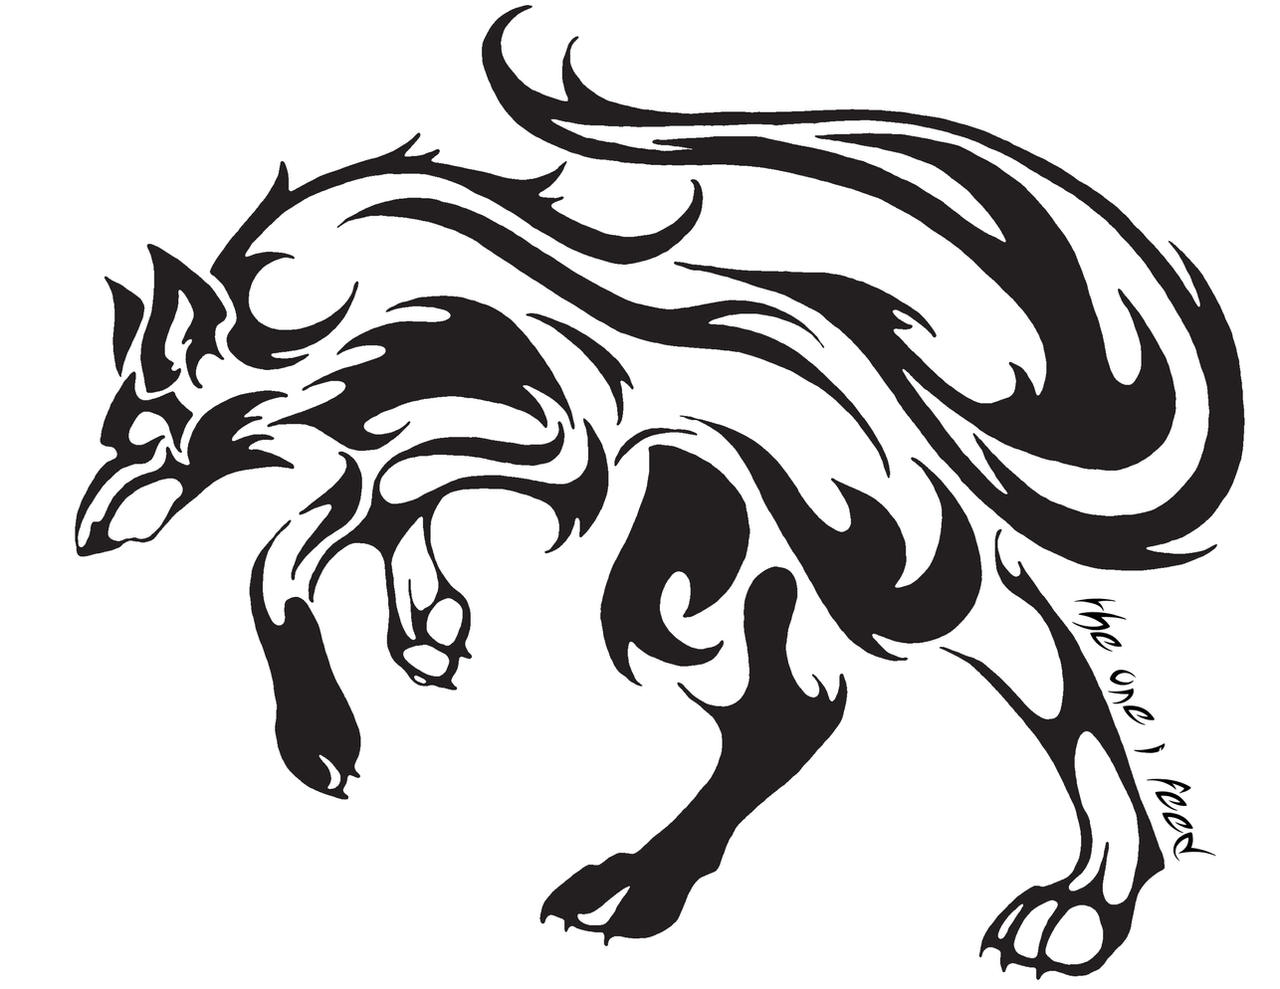 Tribal wolf tattoo by mireille rae on deviantart for Tribal wolf tattoo